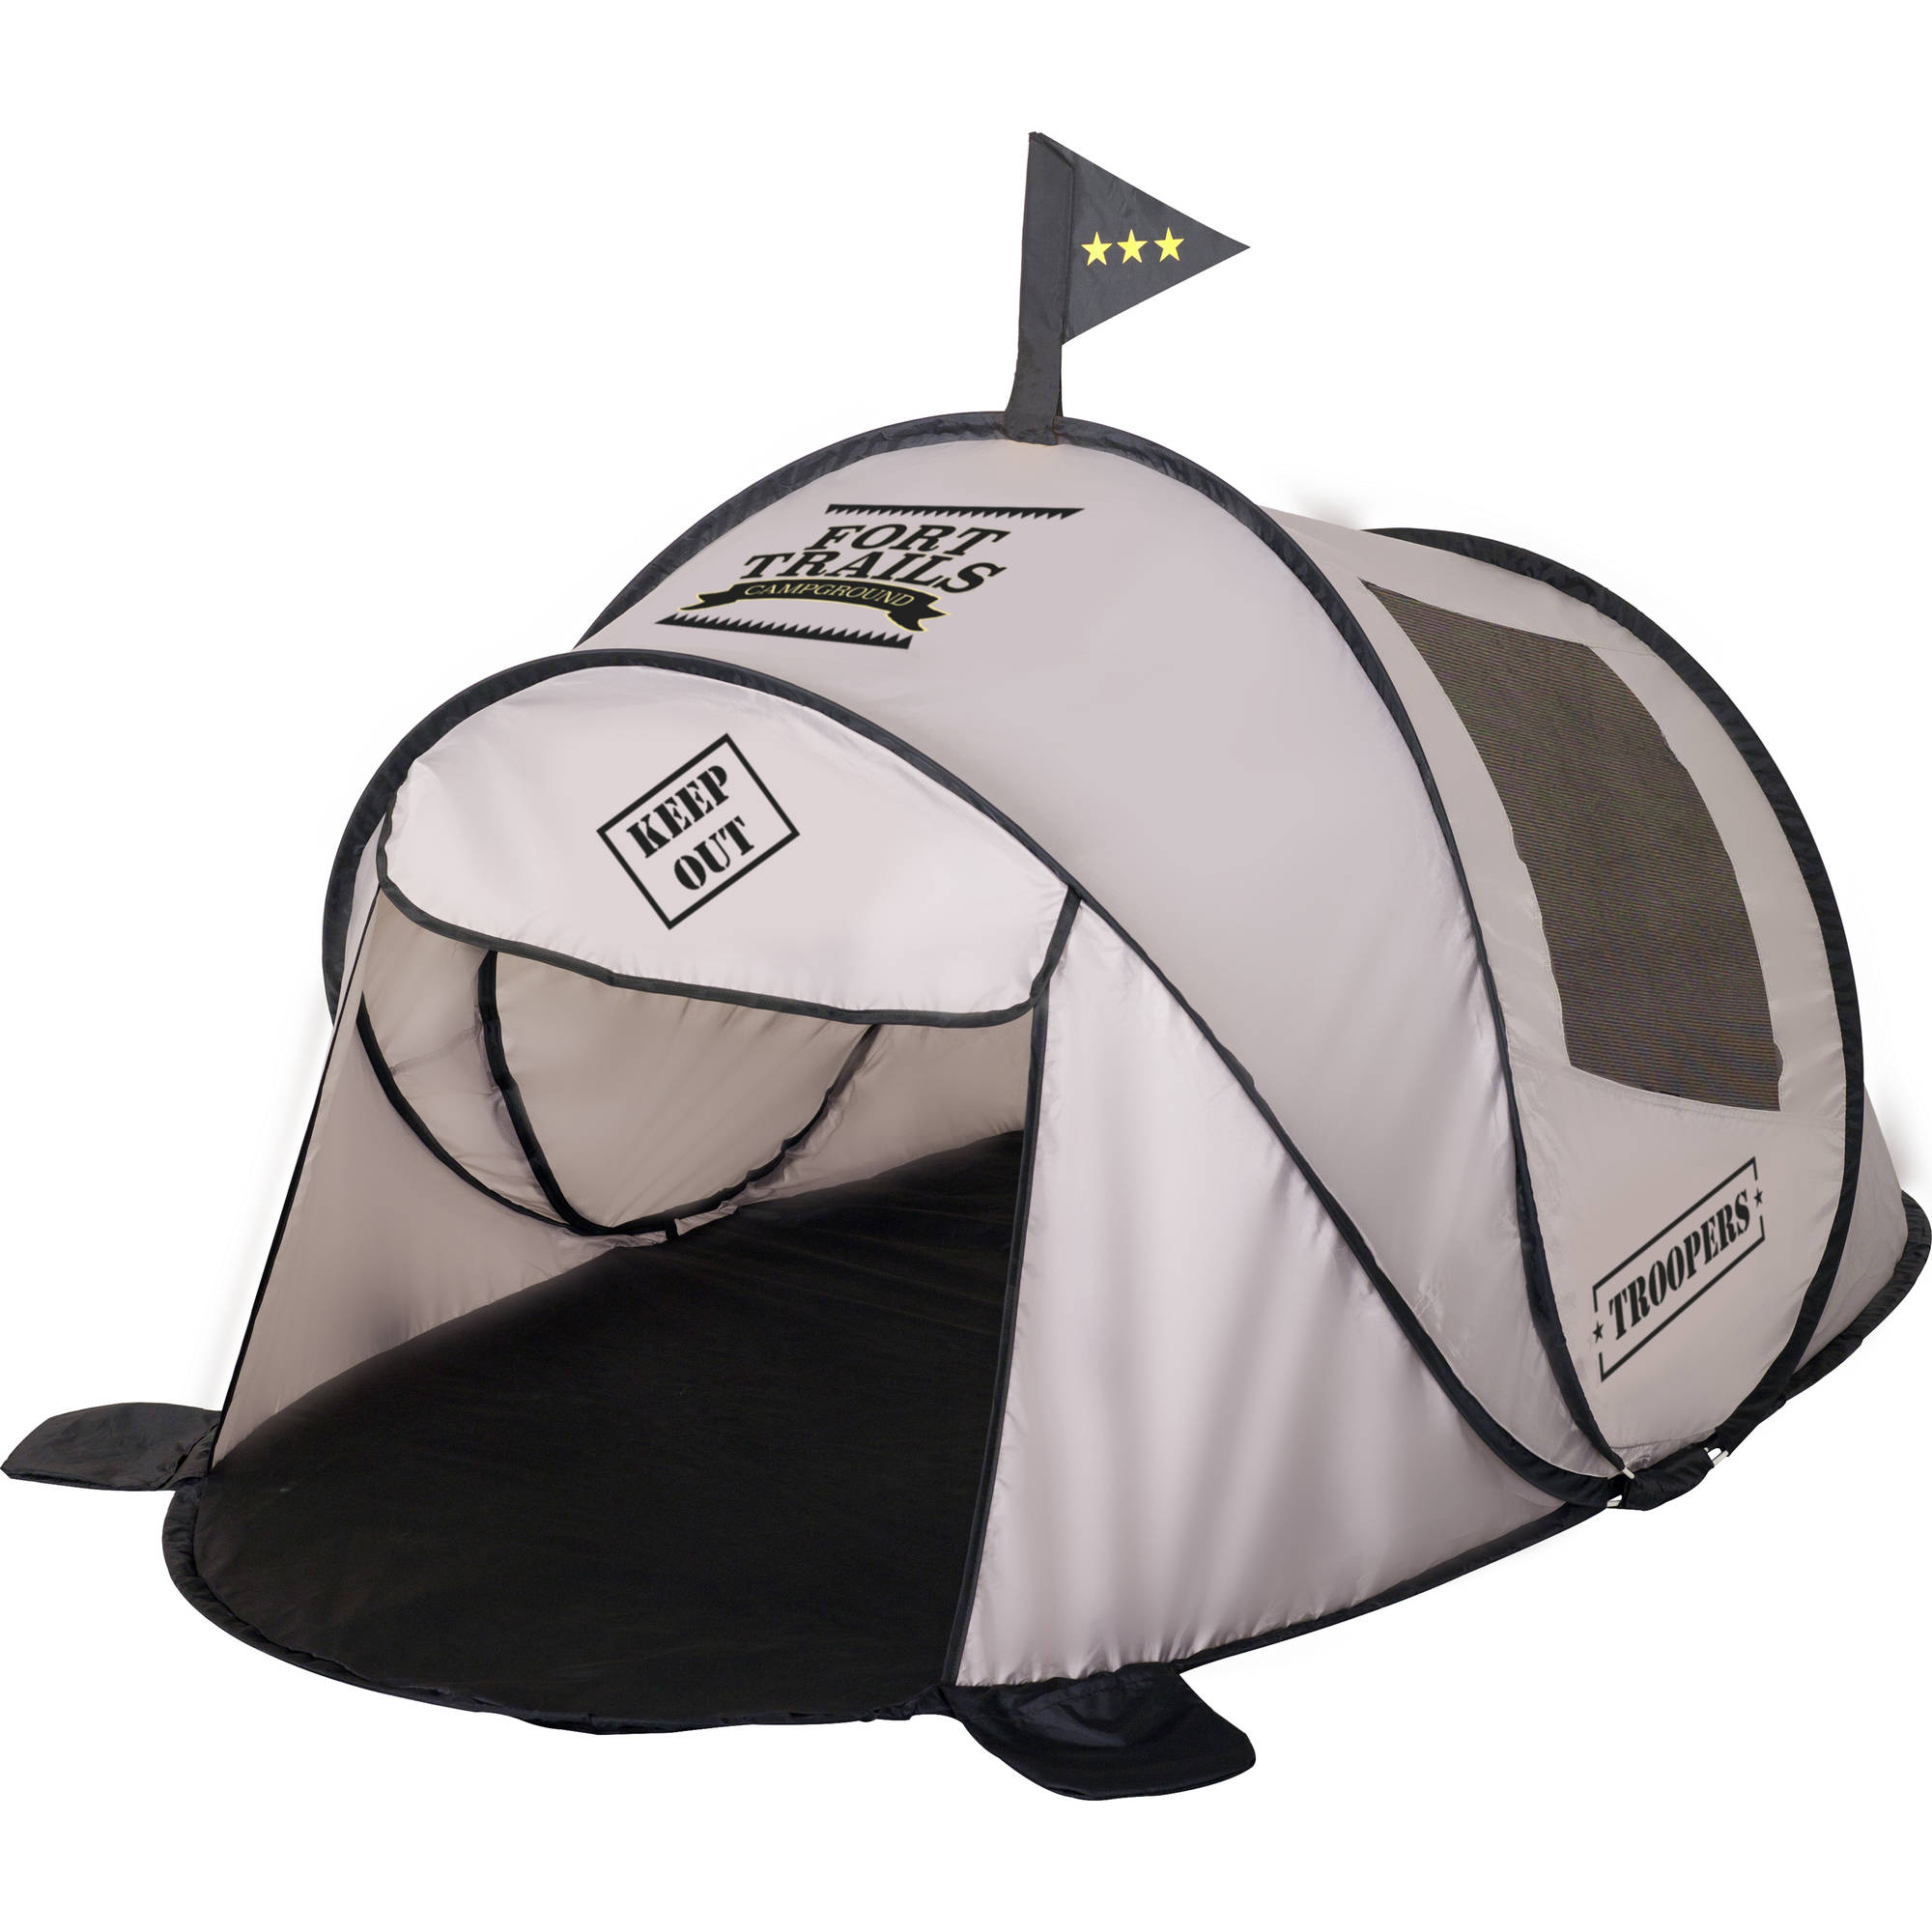 sc 1 st  Walmart : pop tents for kids - memphite.com